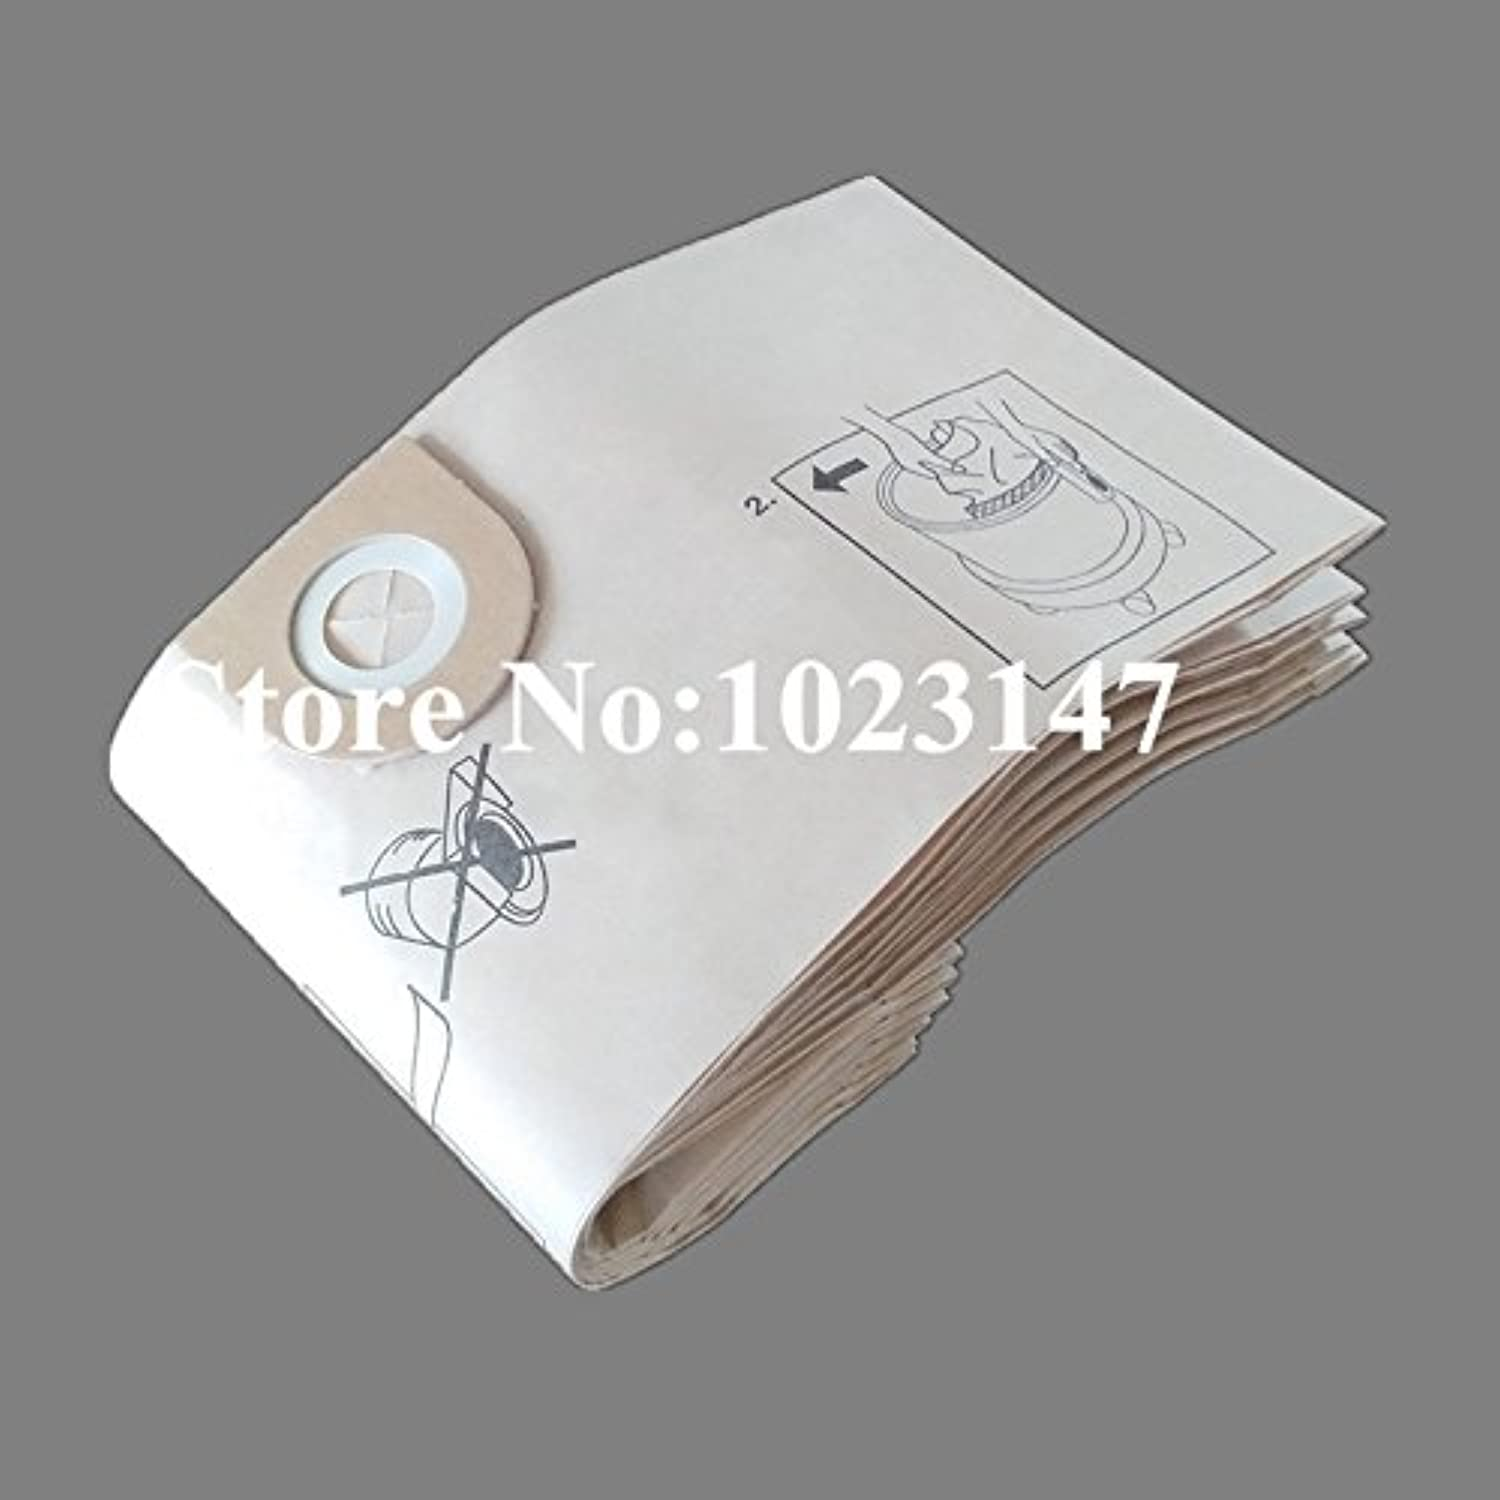 5 pieces/lot Vacuum Cleaner Bags Paper Dust Filter Bag Replacement for Vax 420 Silence Mojo Powa 1600 2000 9000 series 7151 222